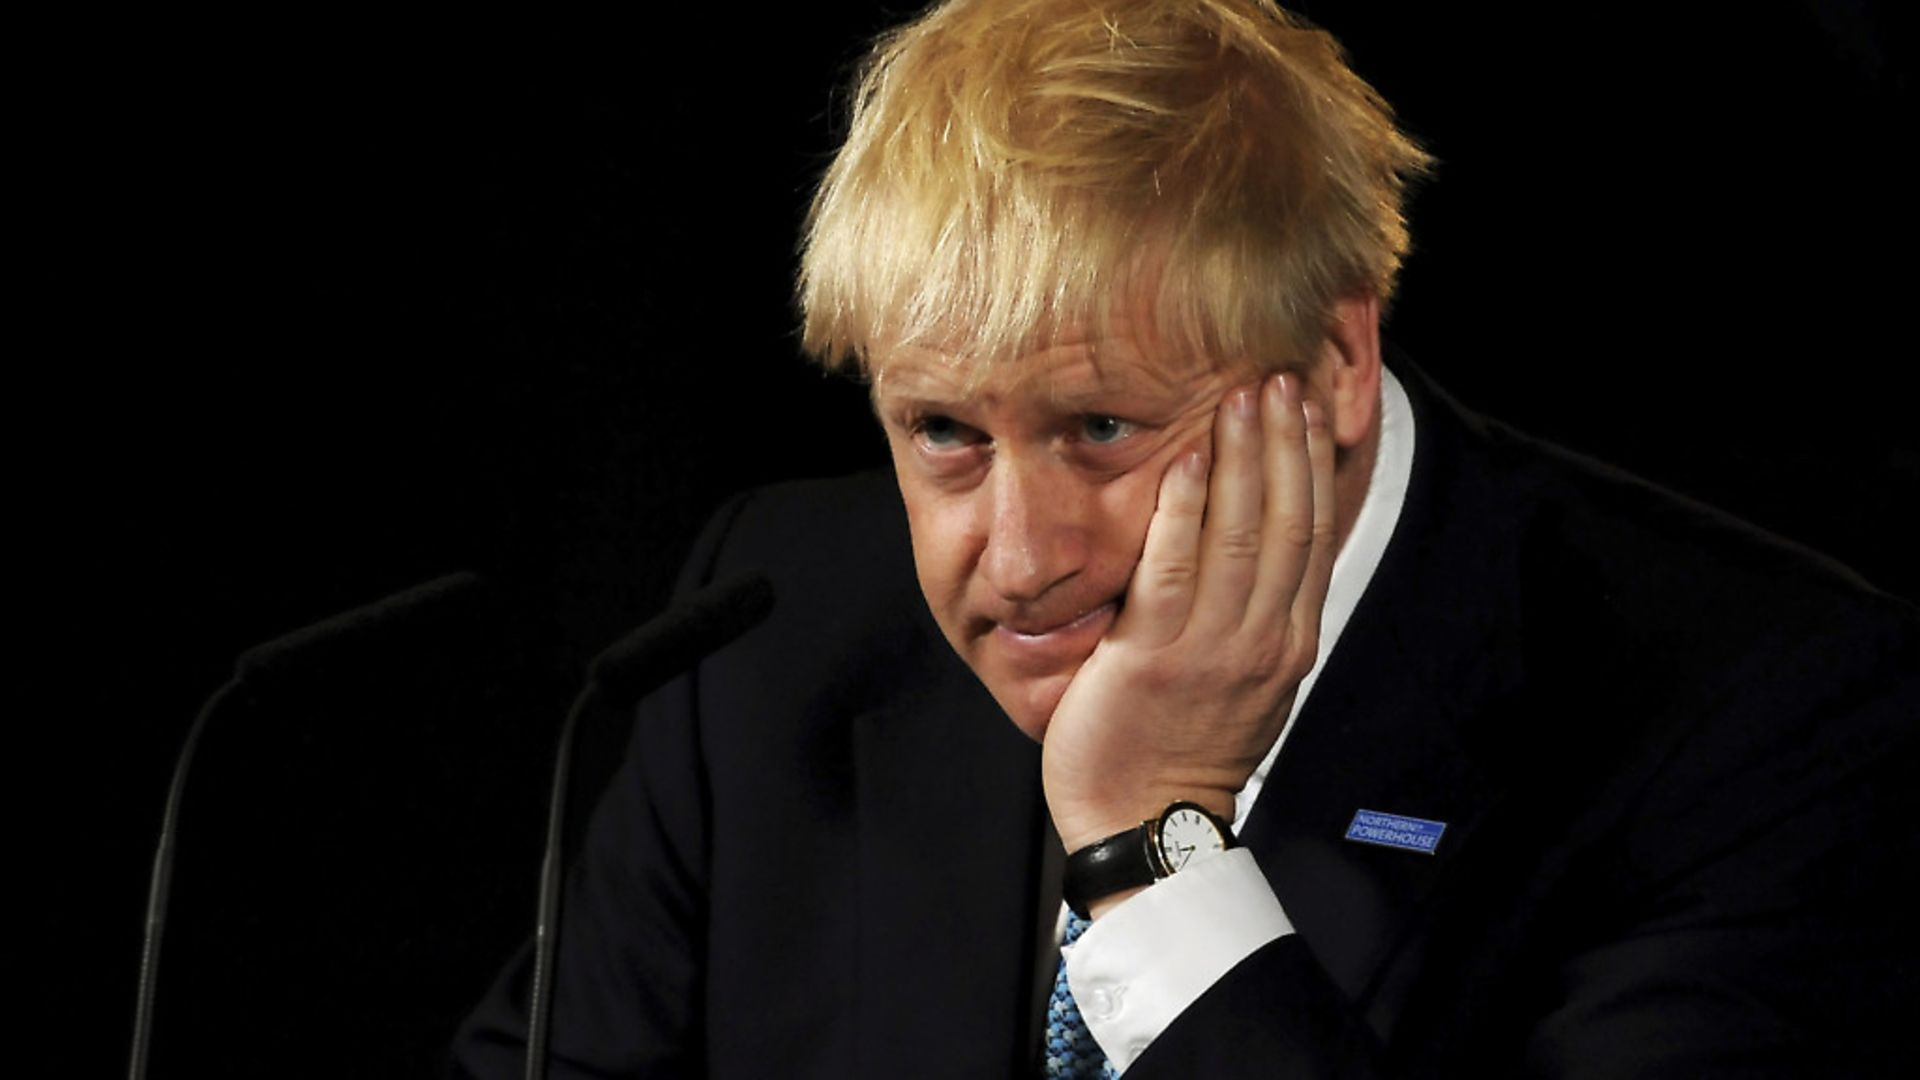 Why won't prime minister Boris Johnson publish his tax return? Picture: Rui Vieira/PA - Credit: PA Wire/PA Images